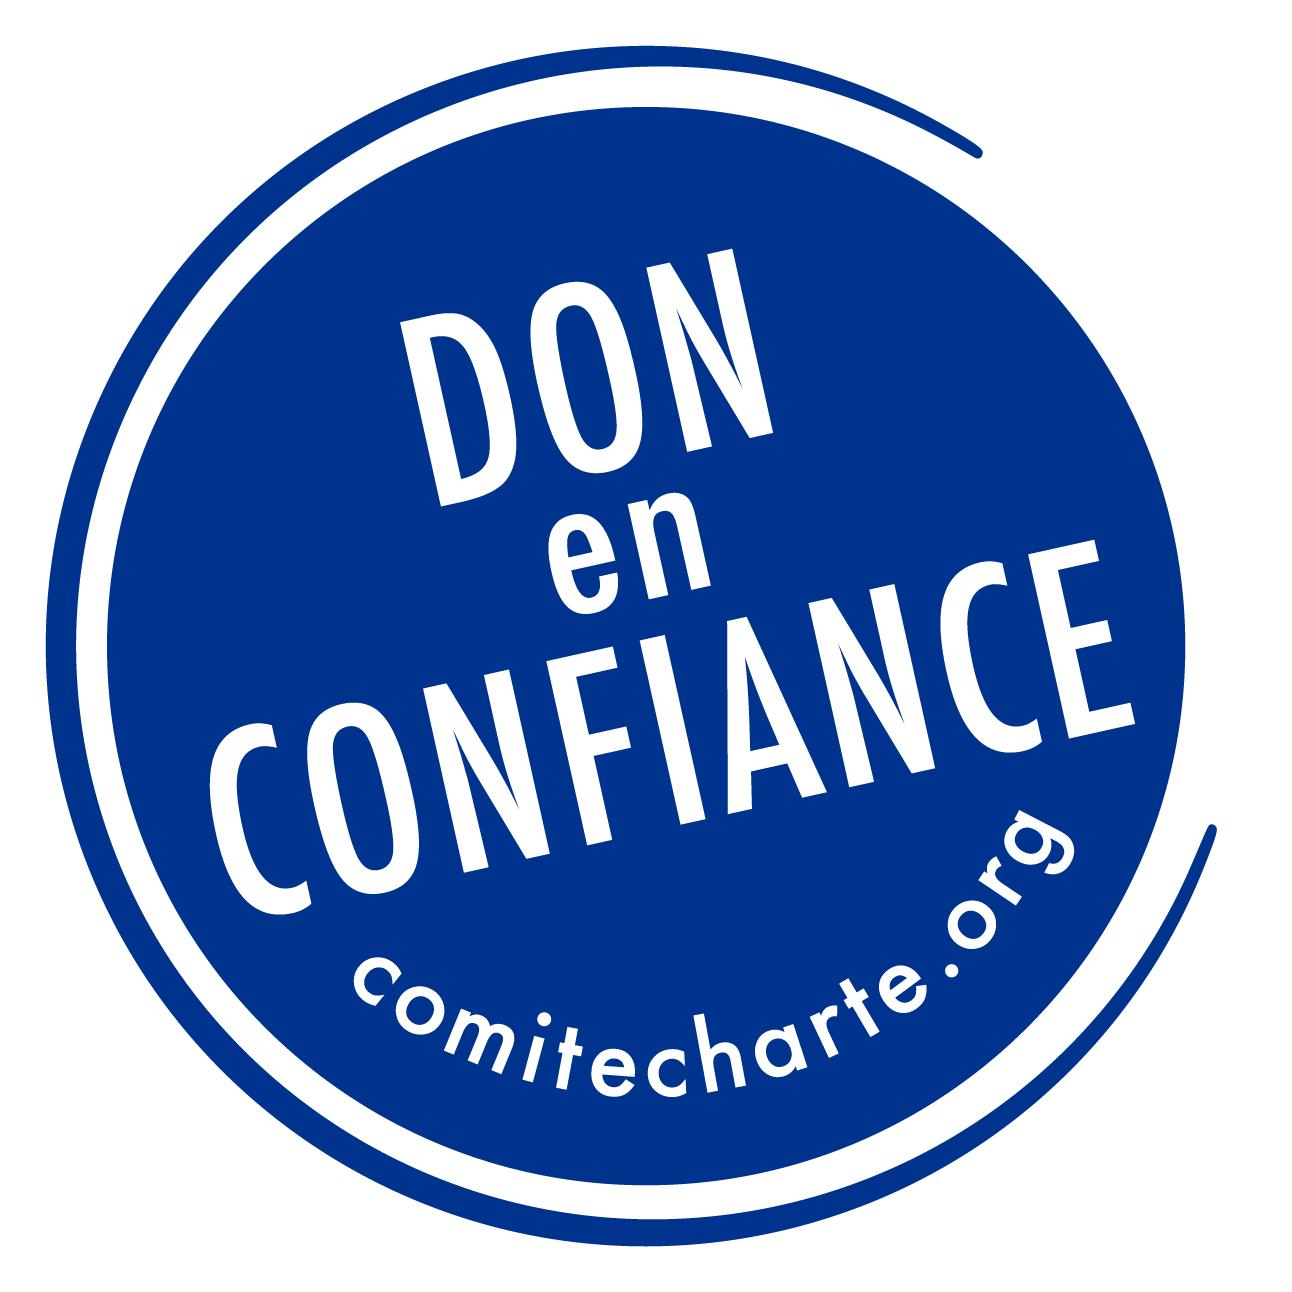 ComiteCharte Don logo RVB1